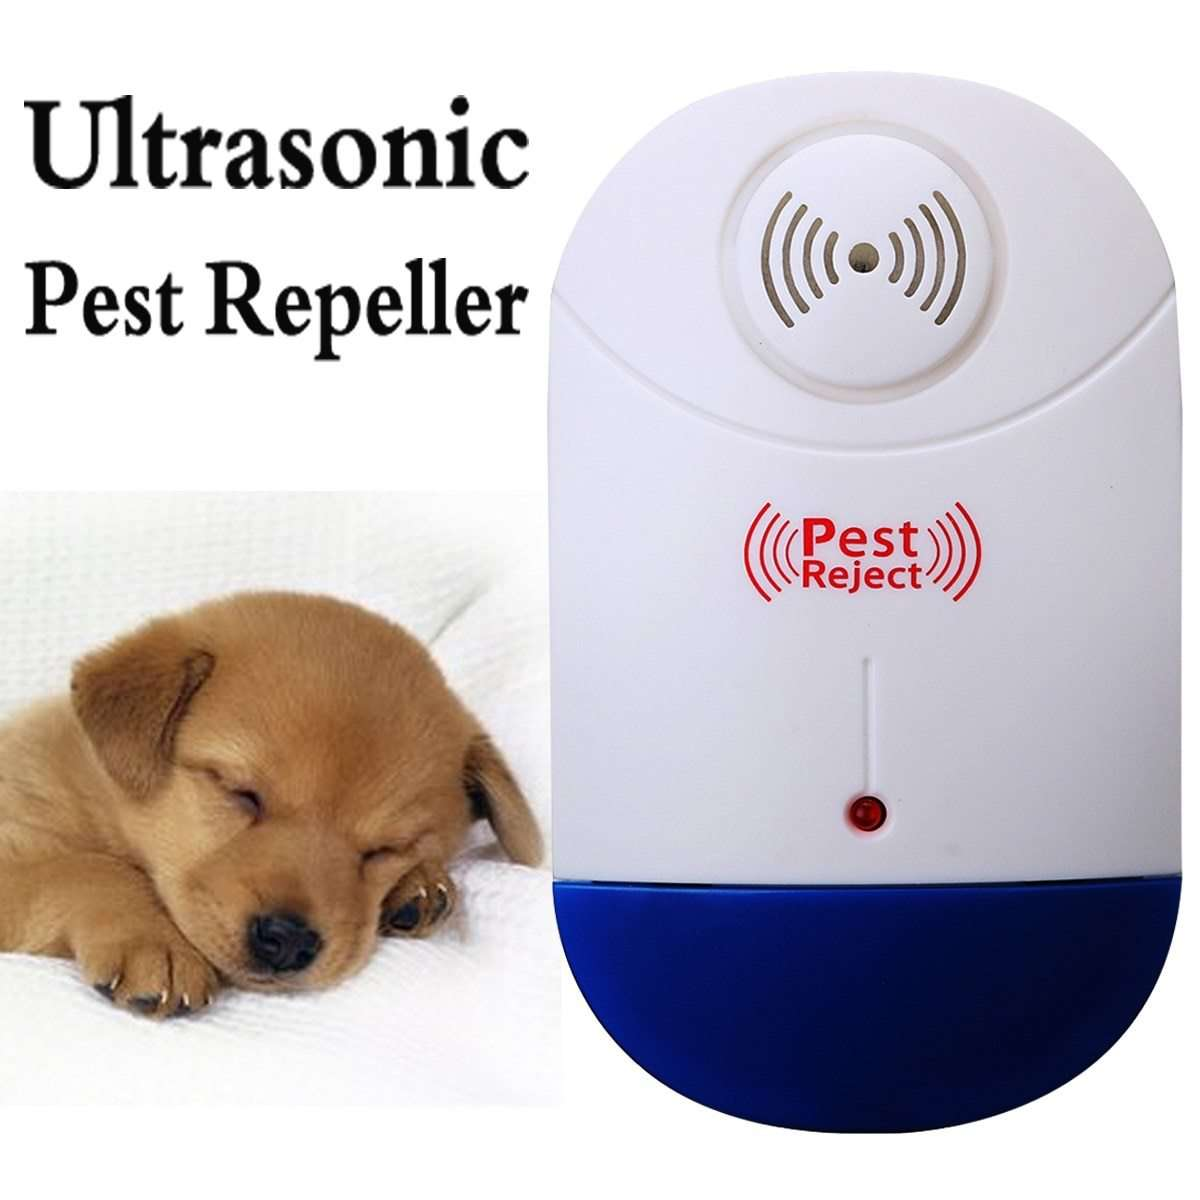 Ultrasonic Pest Repeller Electronic Mosquito Control Plug In Rodent Mice Insect Non-toxic Home Garden Pest Control Tools Device, Default title 0, www.suppashoppa.co.uk